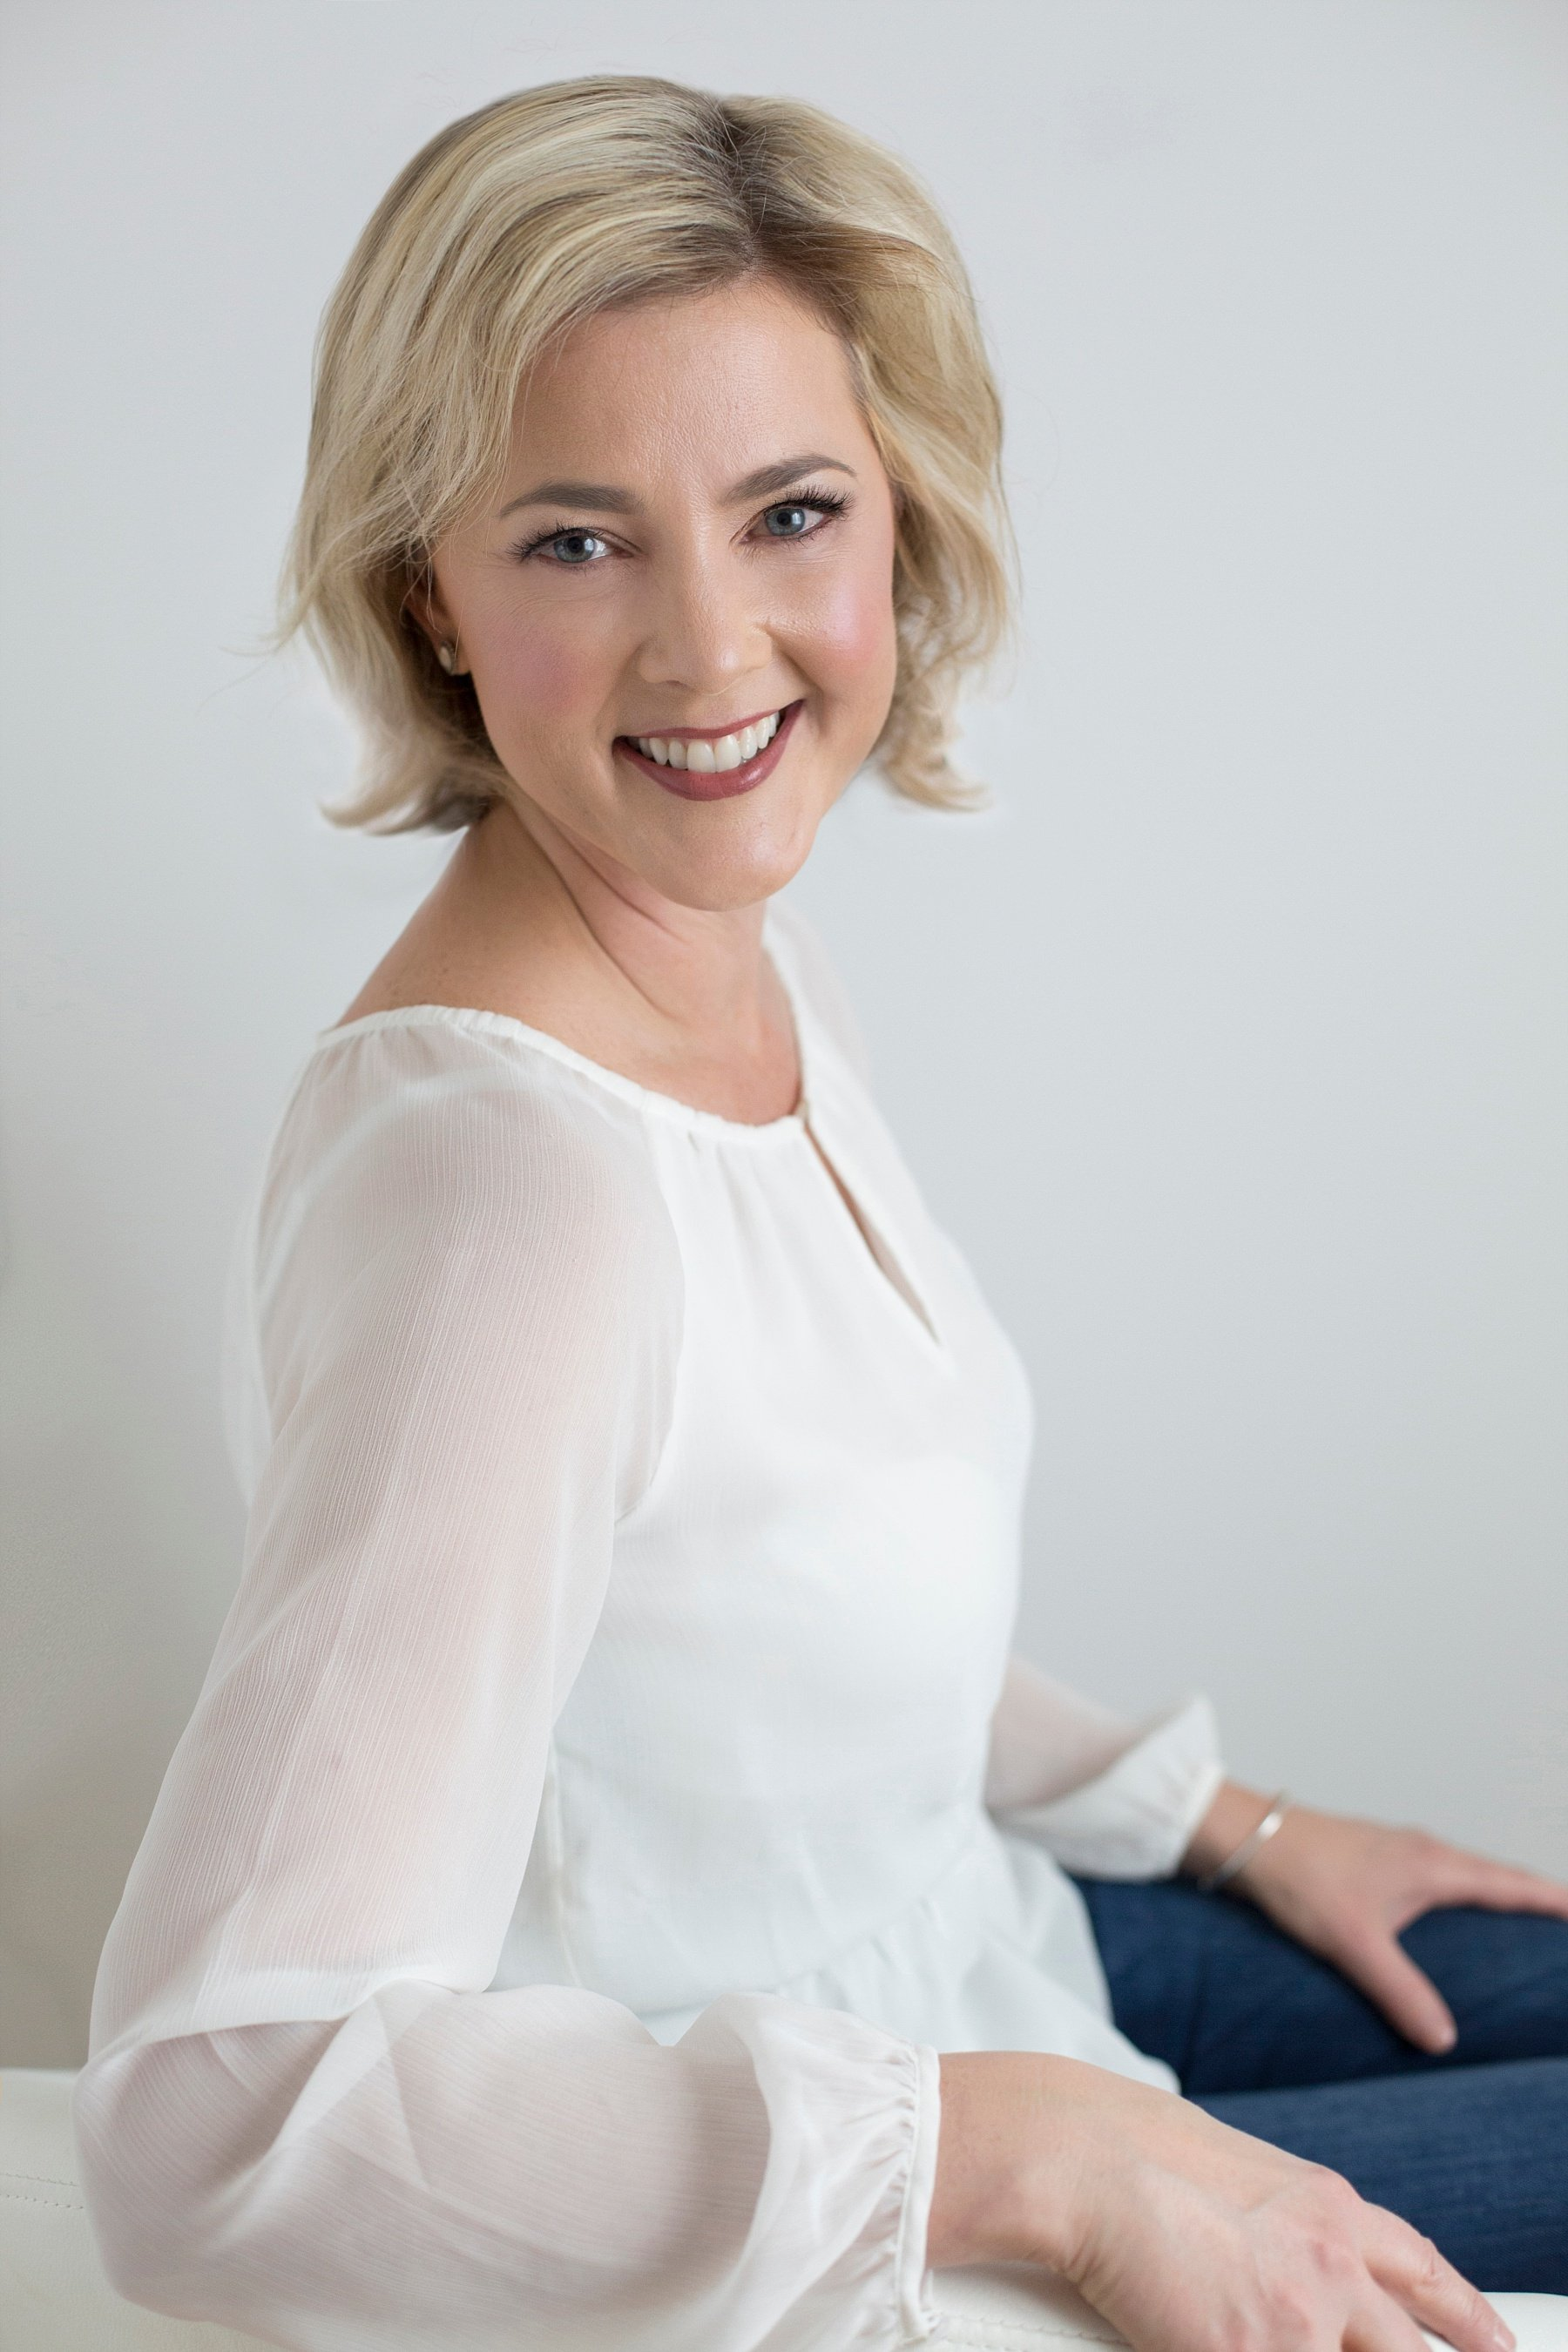 Allison Dunn in a white blouse smiling as she sits on a white leather couch.